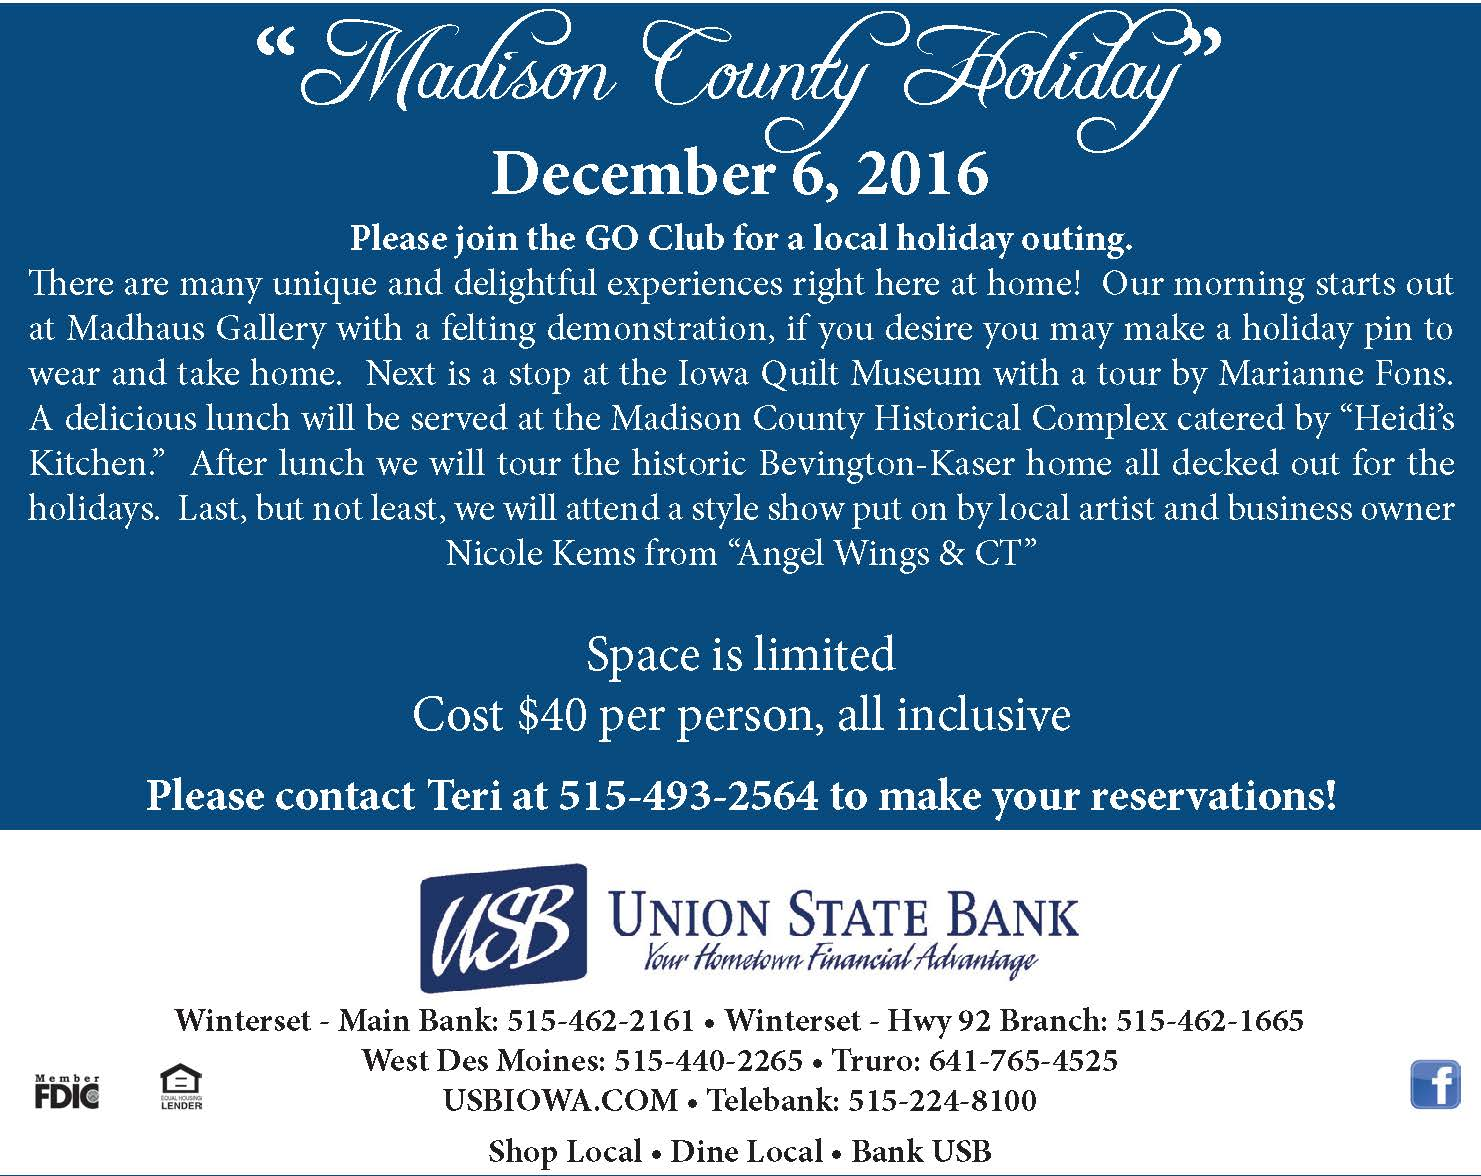 FINAL_USB_GoClub_Madison Co. Holiday